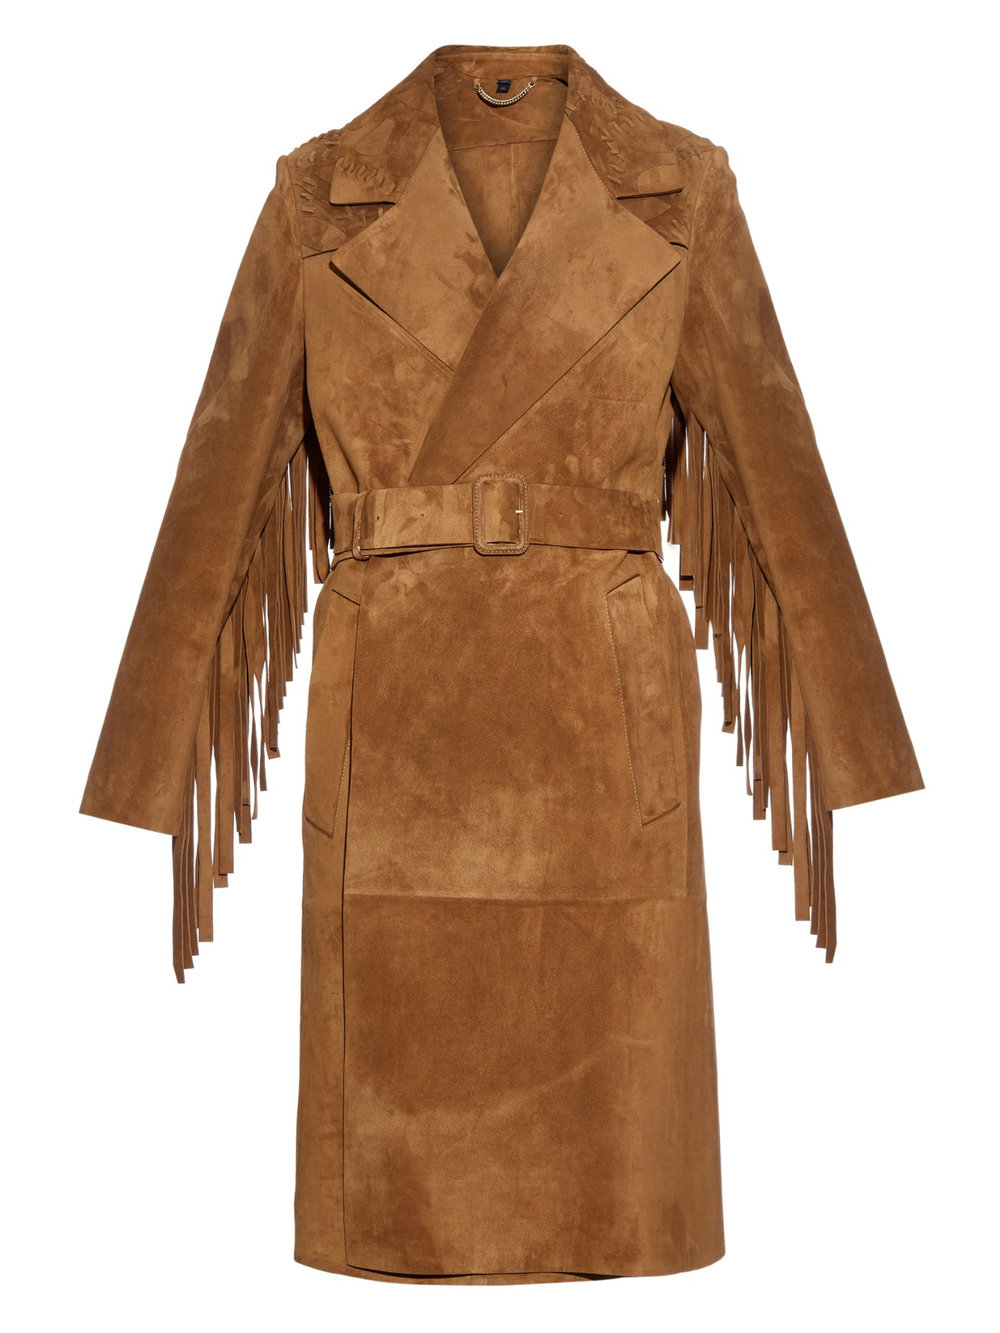 BURBERRY   Prorsum Fringe Suede Coat  Borrow $200 / Retail $4,995